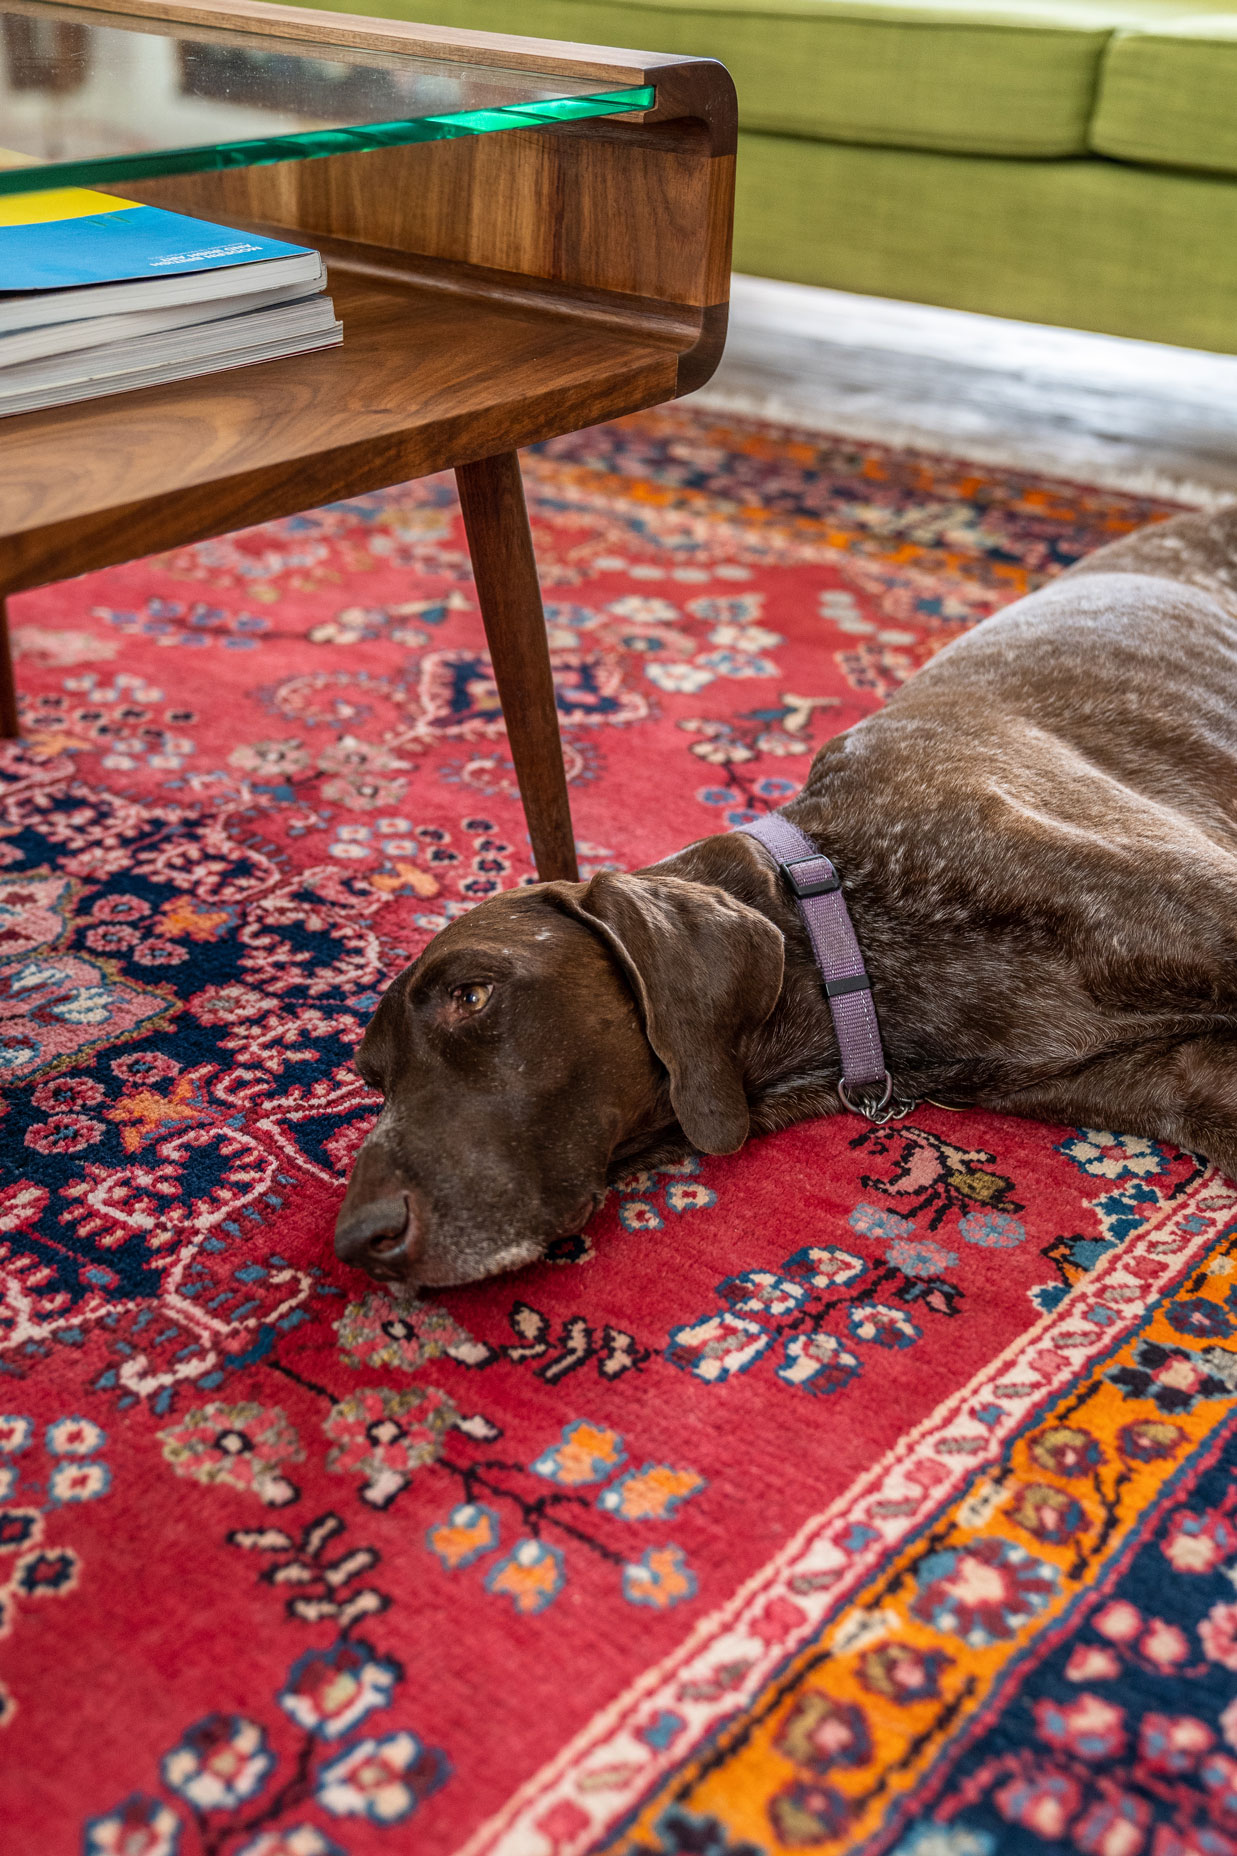 A brown dog on a red oriental carpet